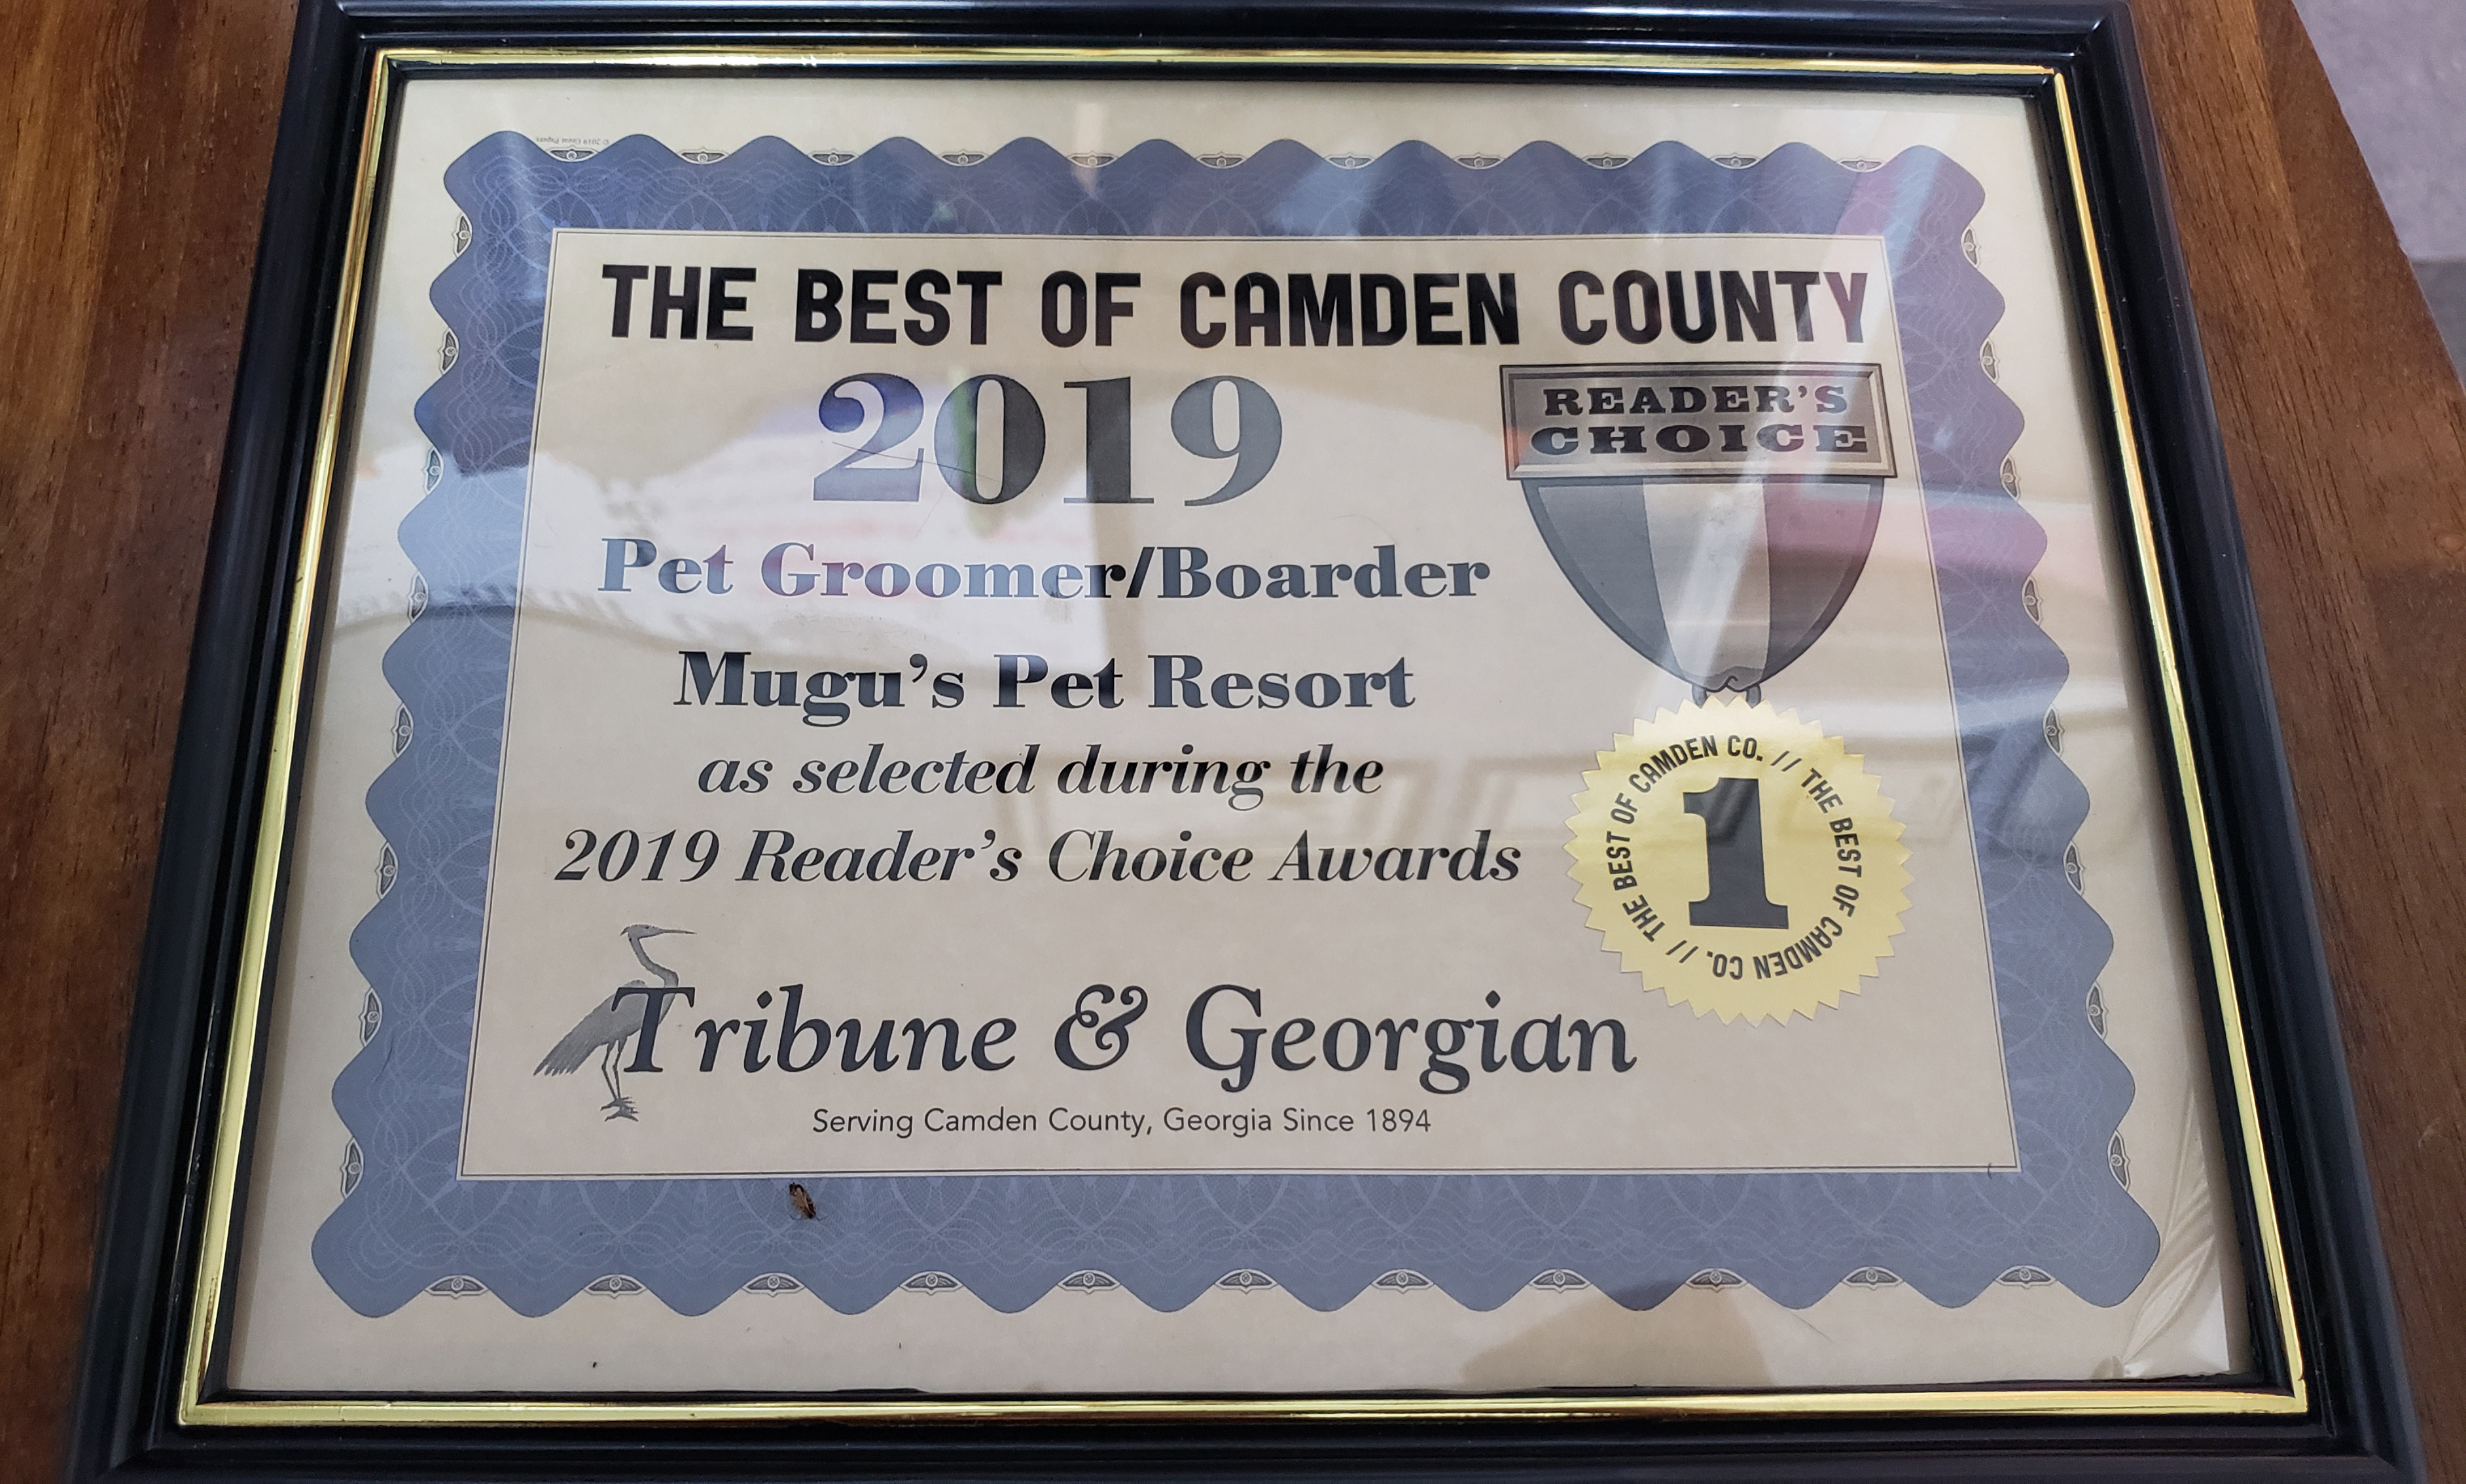 Best in Camden 2019 Best Pet Grooming